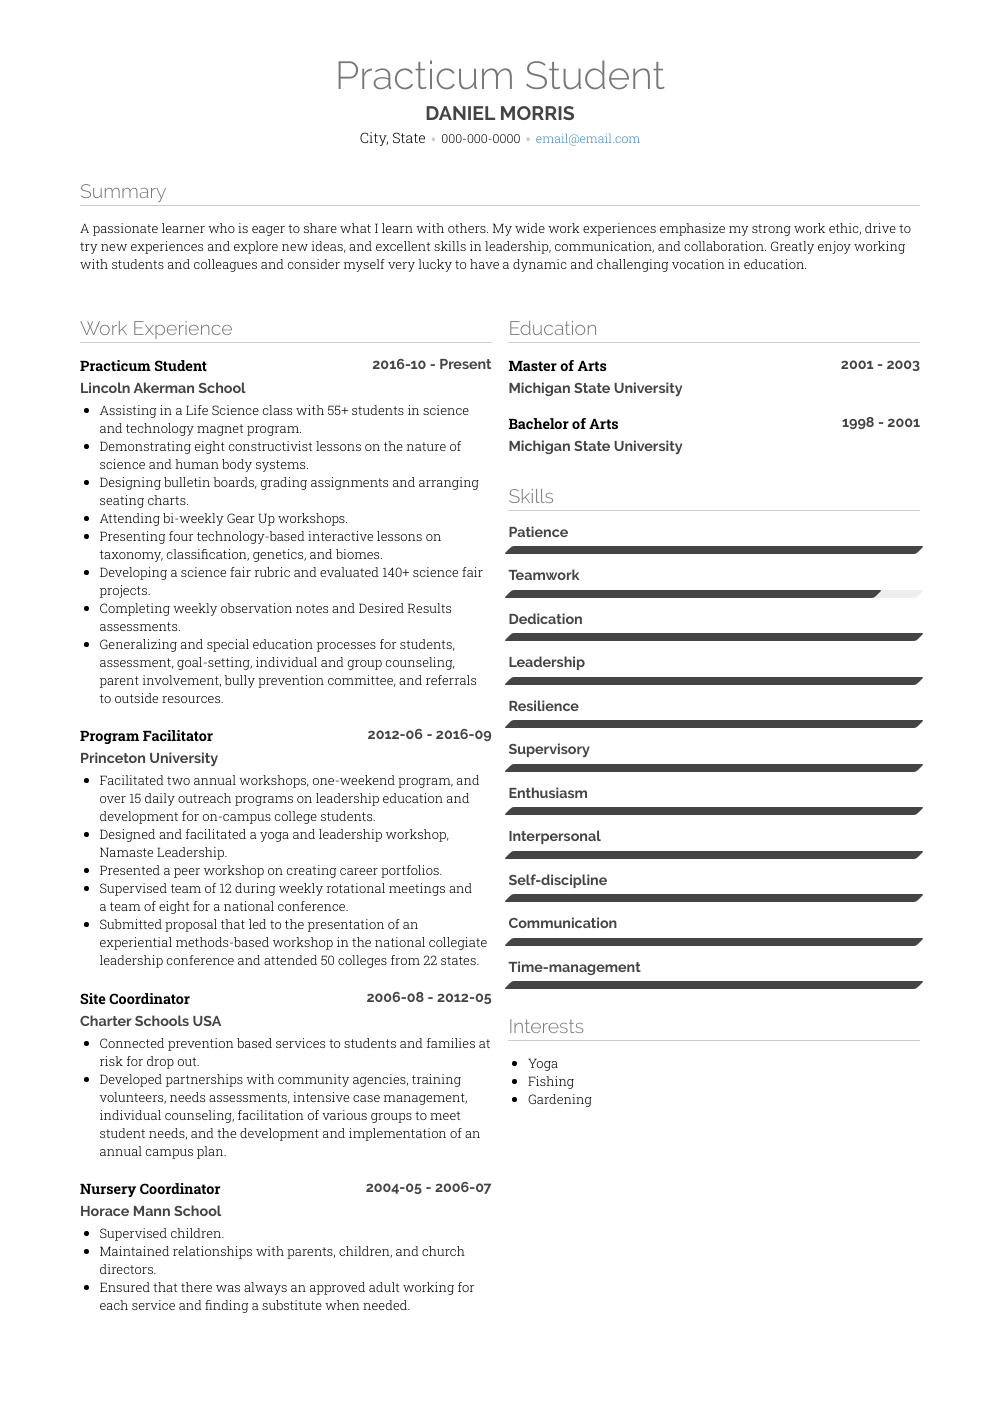 practicum resume sample